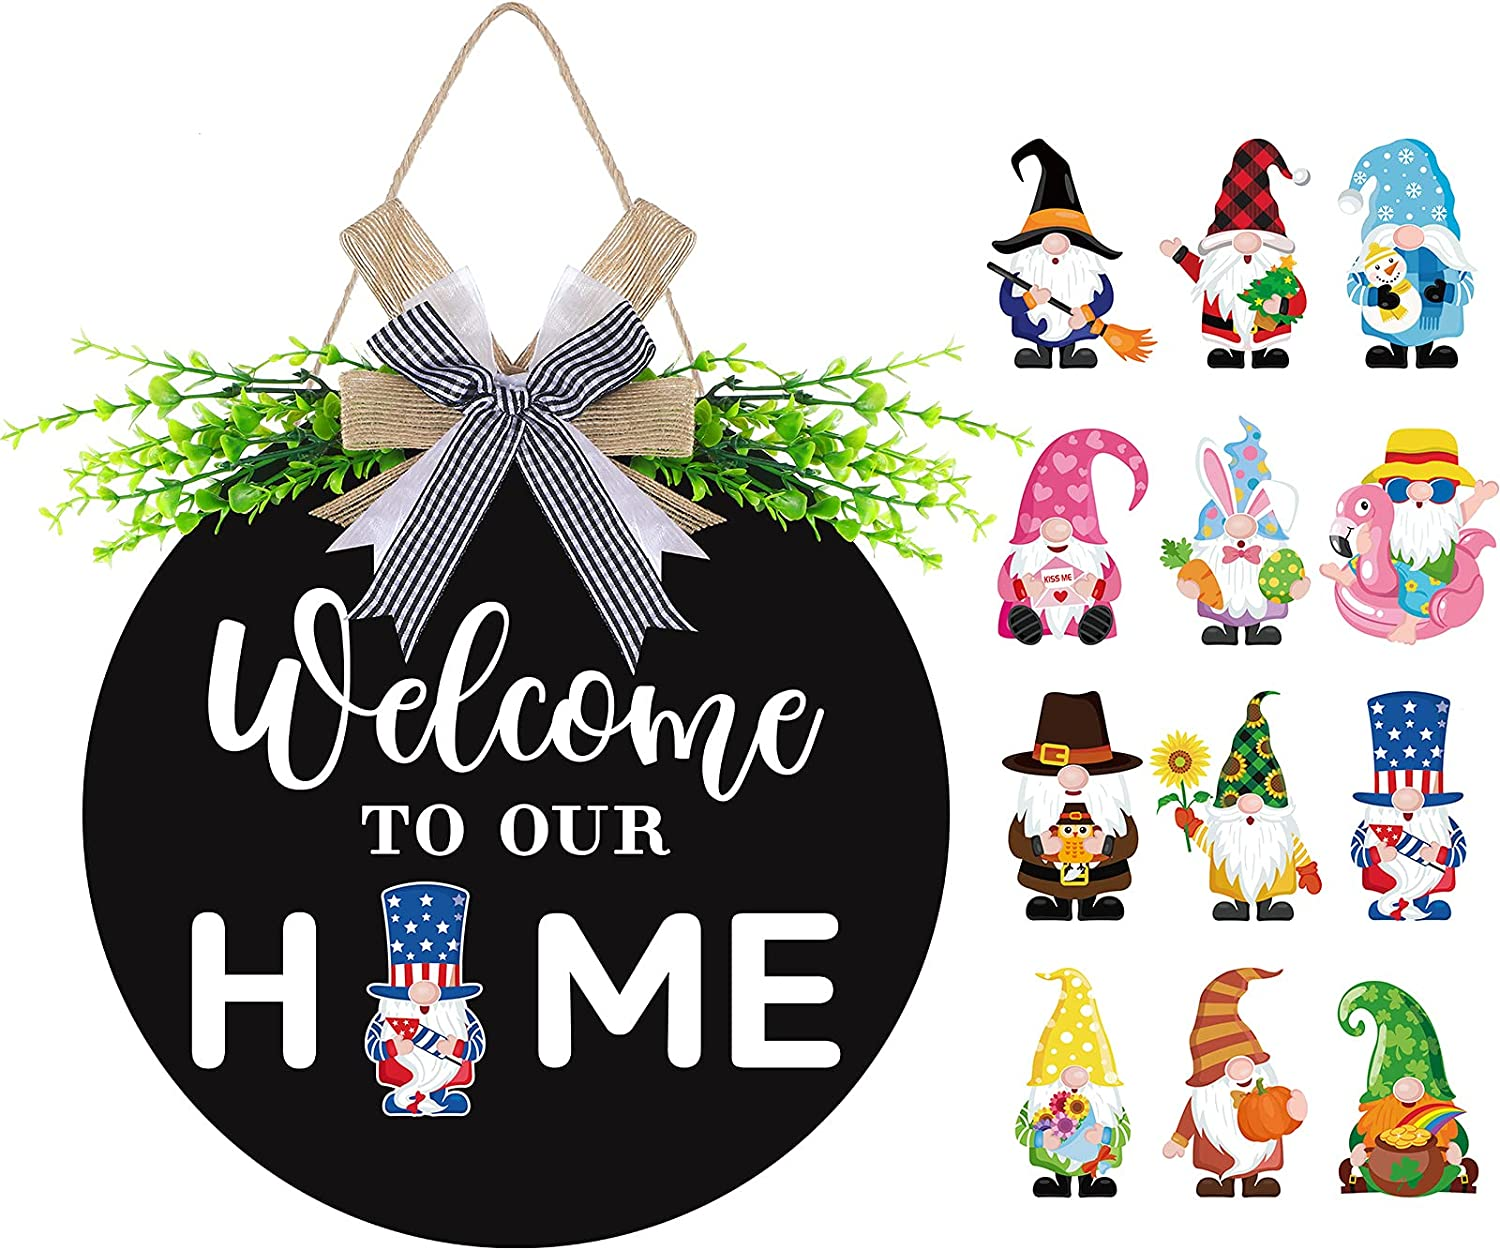 Gnome Wooden Seasonal Welcome Door Sign Interchangeable Welcome to Our Home Round Wood Hanging Front Door Sign with Burlap Bow with 12 Seasonal Ornament for Independence Day Holiday Porch (Black)